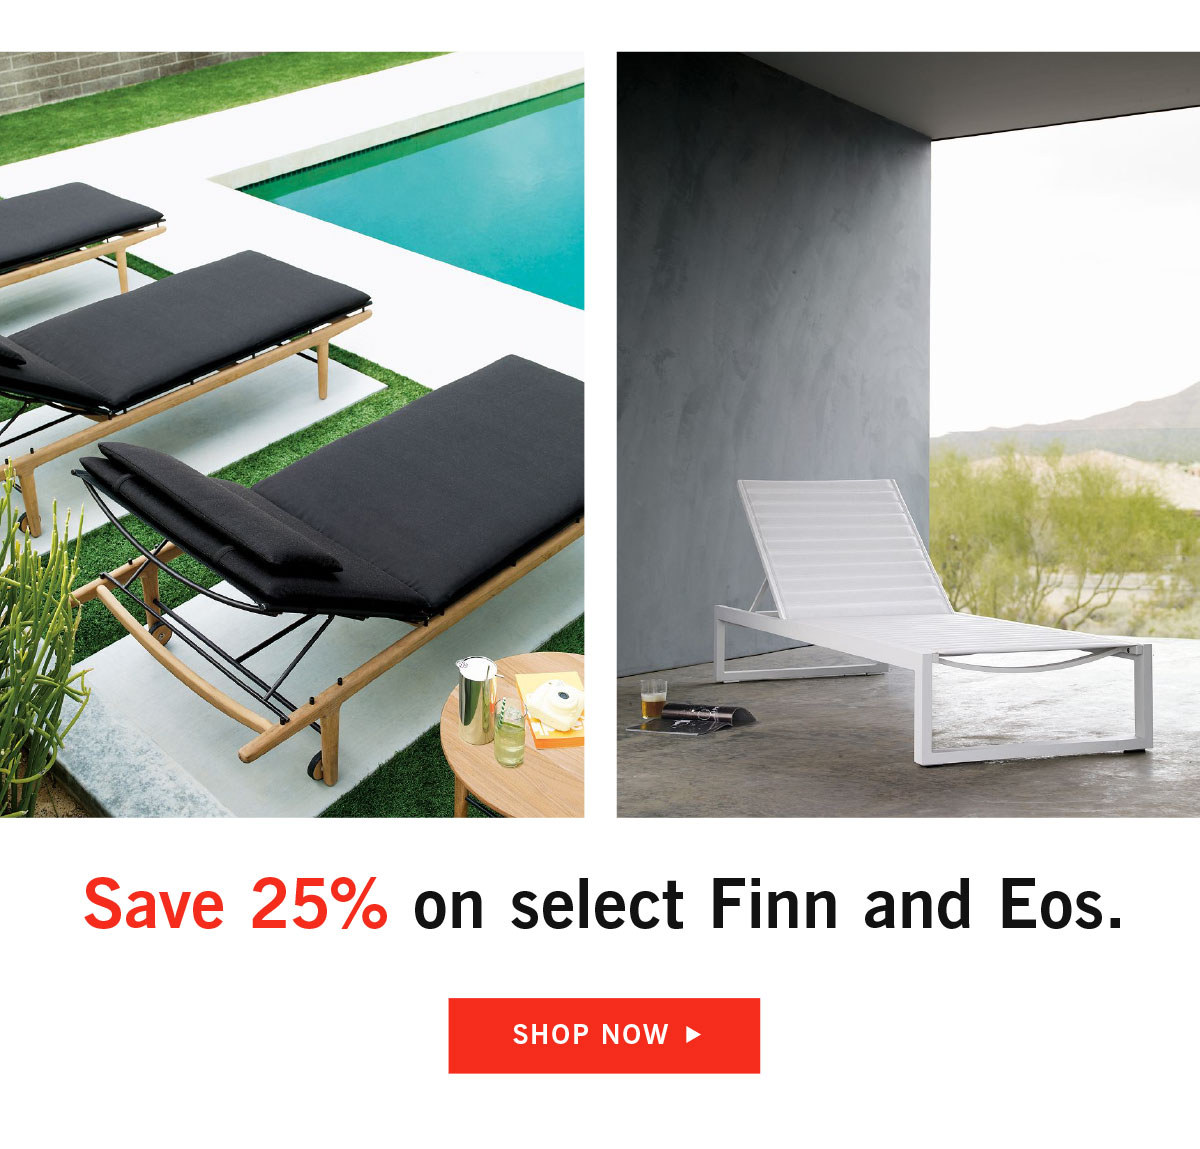 Save 25% on select Finn and Eos. Shop Now.